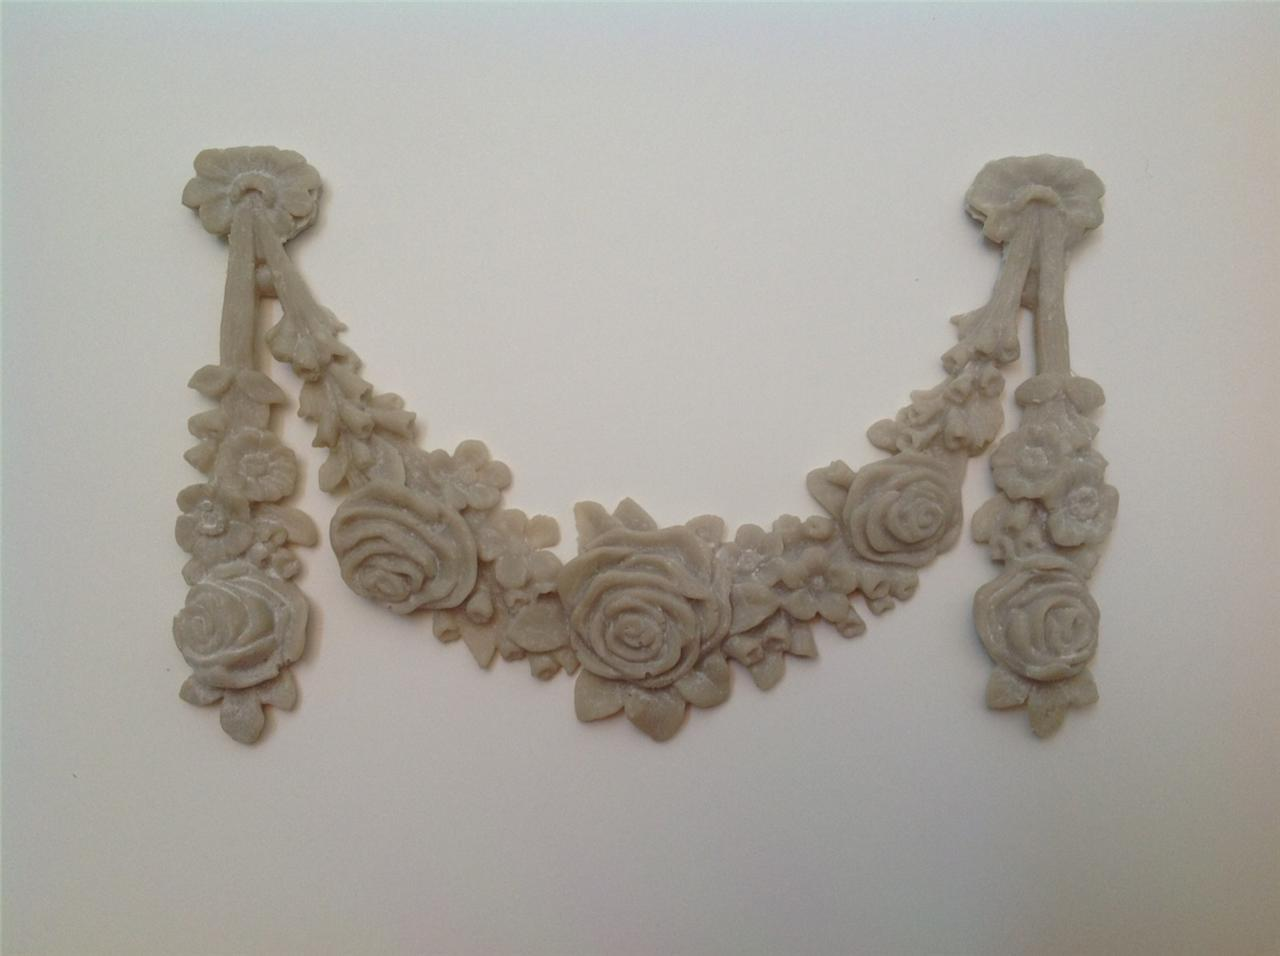 shabby n chic french provincial vintage furniture applique large rose wreath